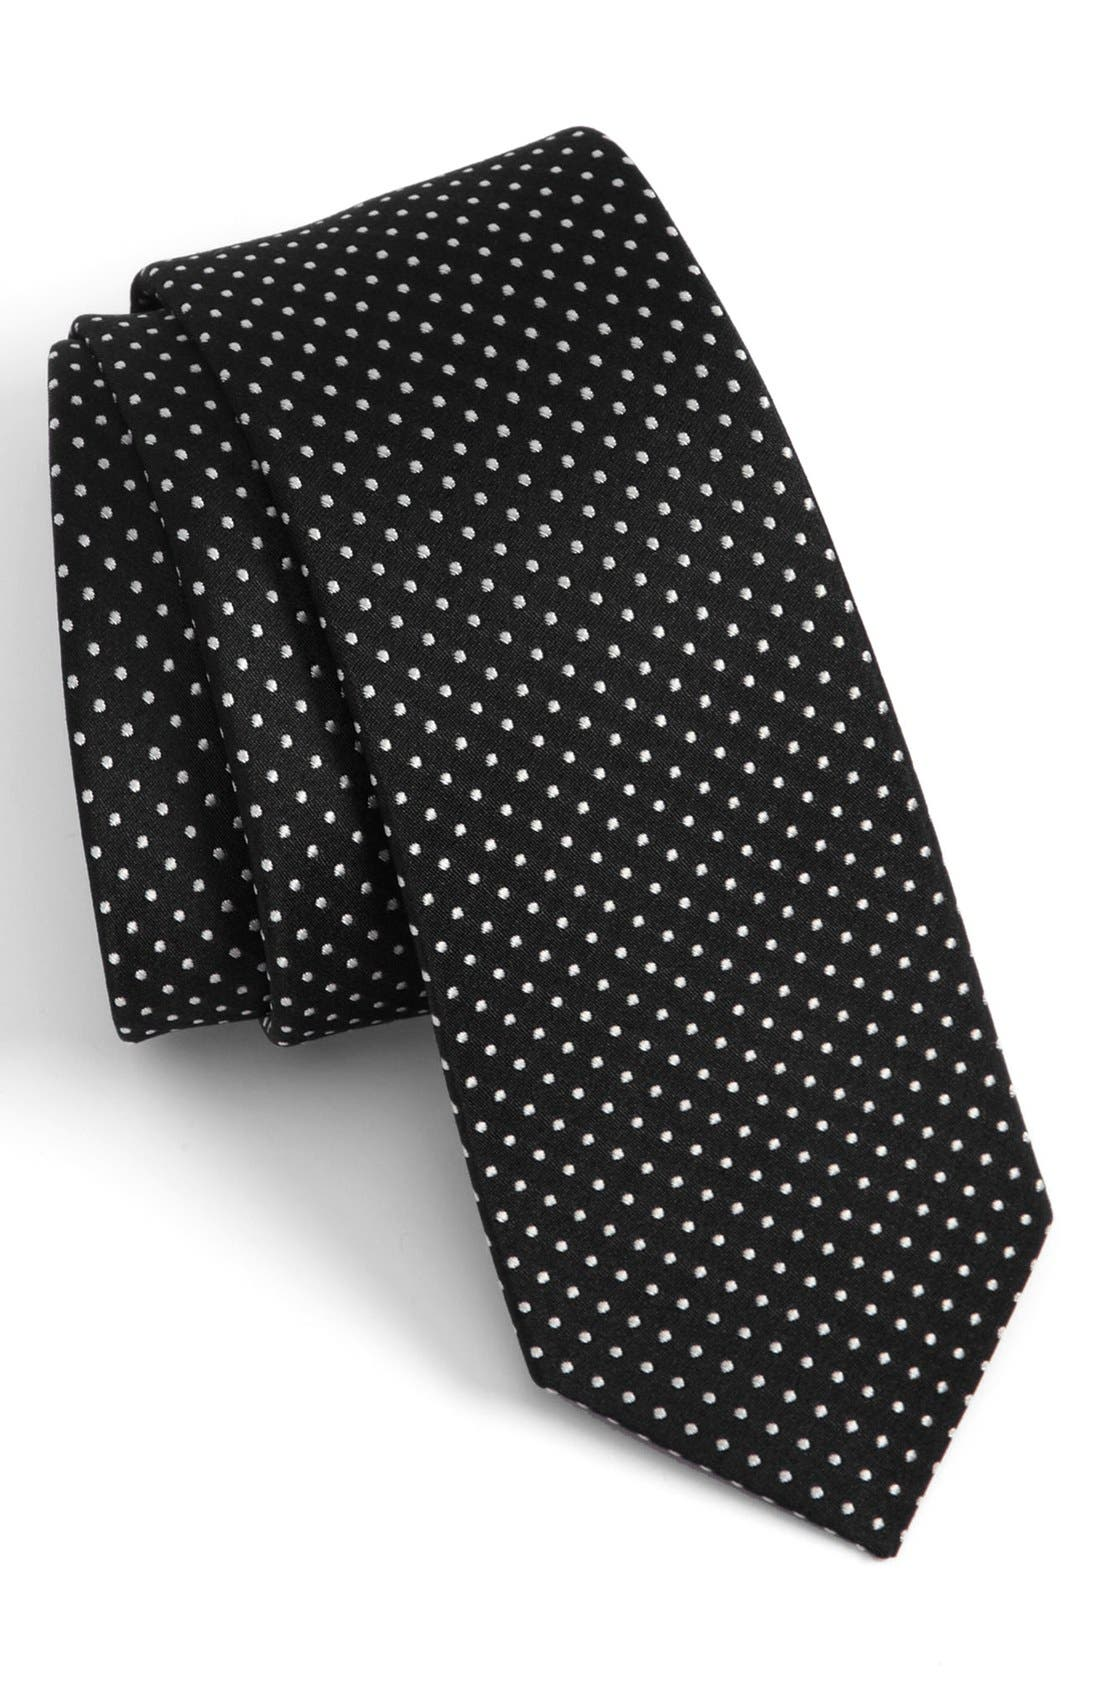 Alternate Image 1 Selected - The Tie Bar Woven Silk Tie (Online Only)